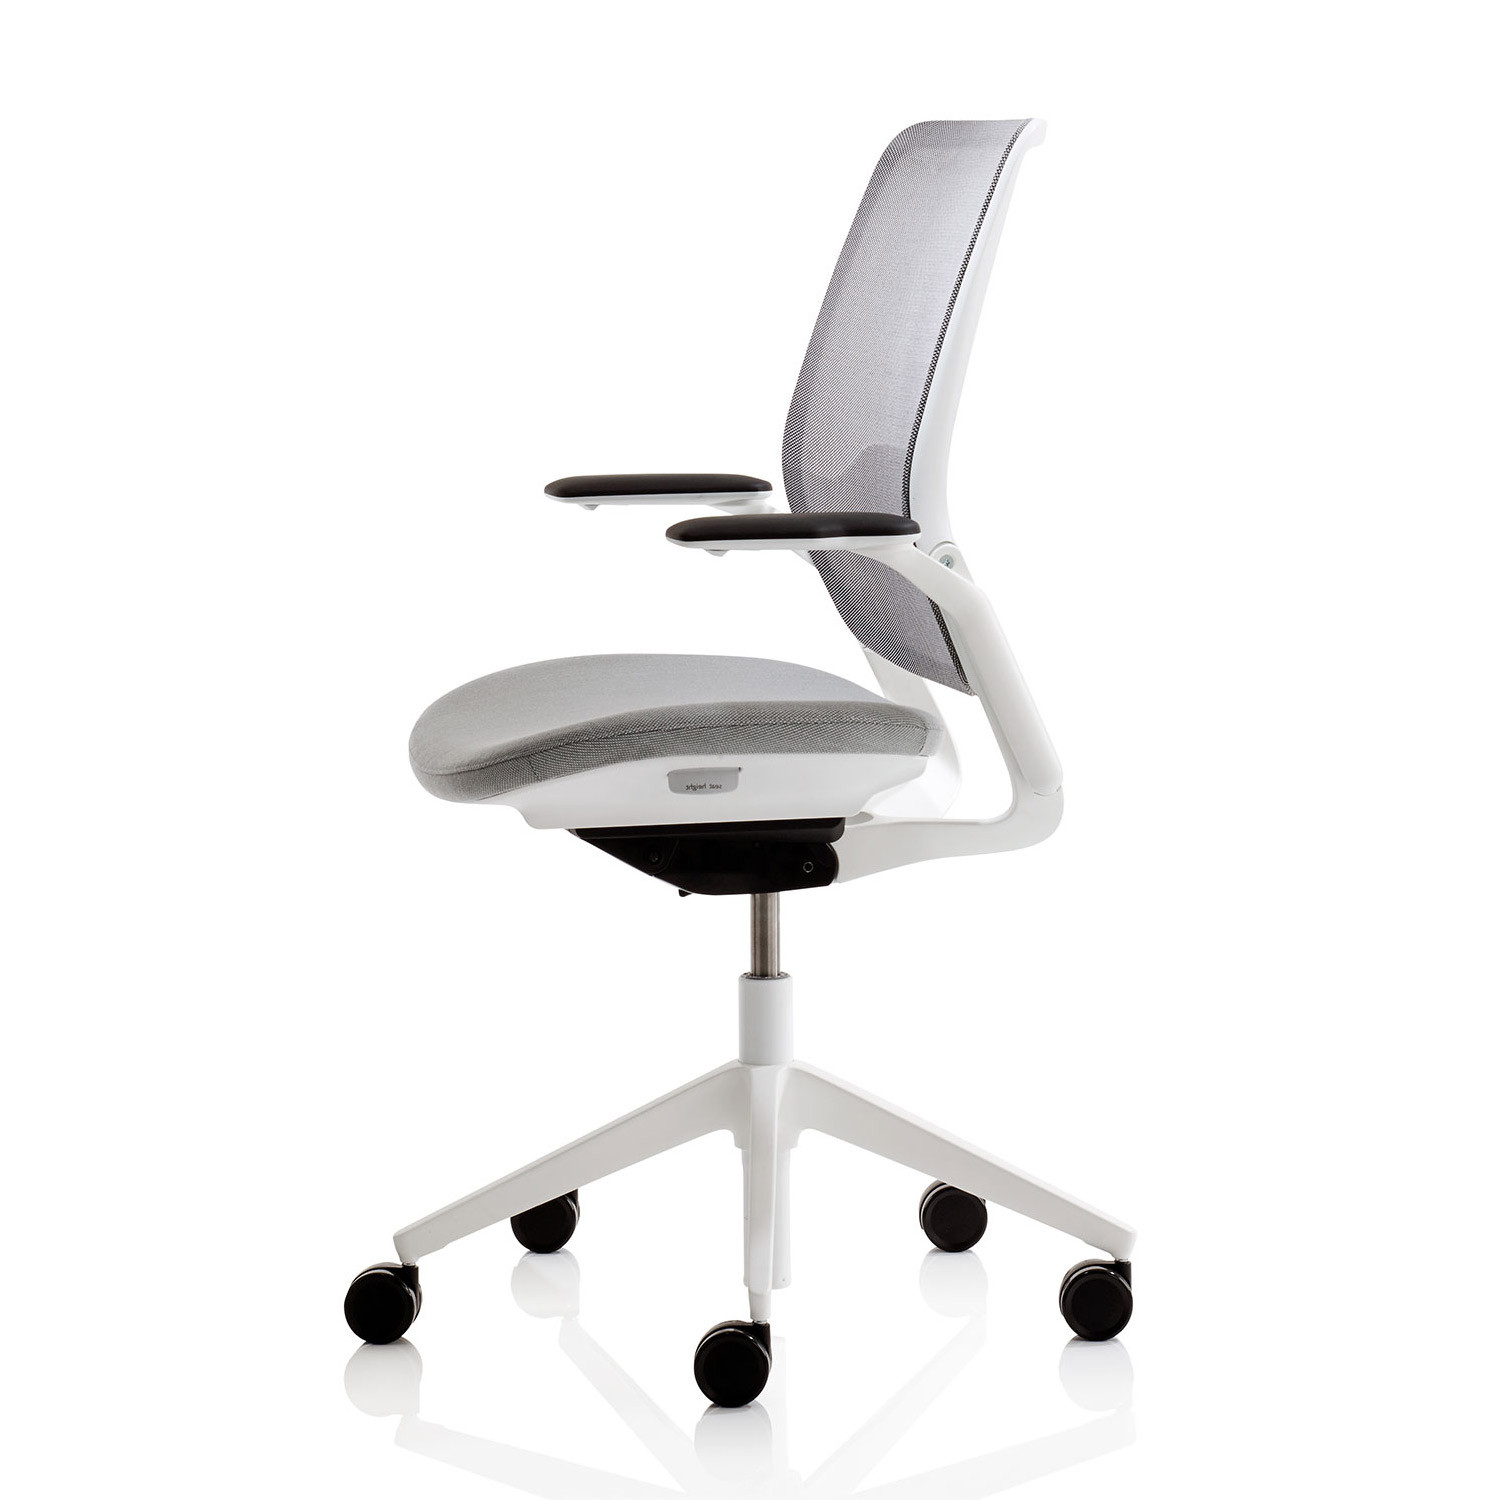 knitted revolving chair fox accessories eva task chairs mesh office apres furniture